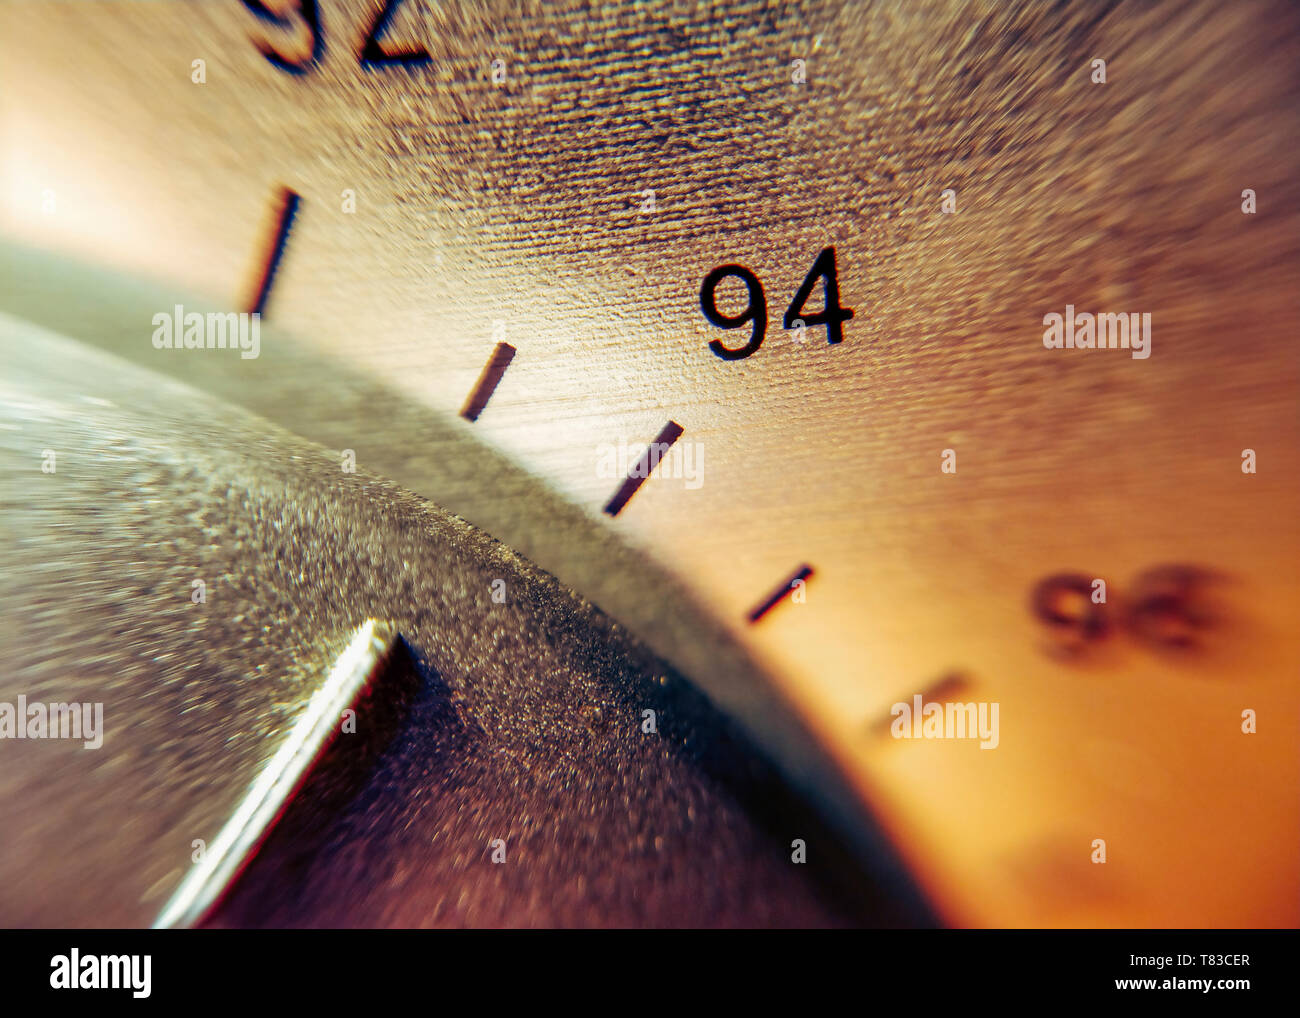 Detail of the scale of an analog radio Stock Photo